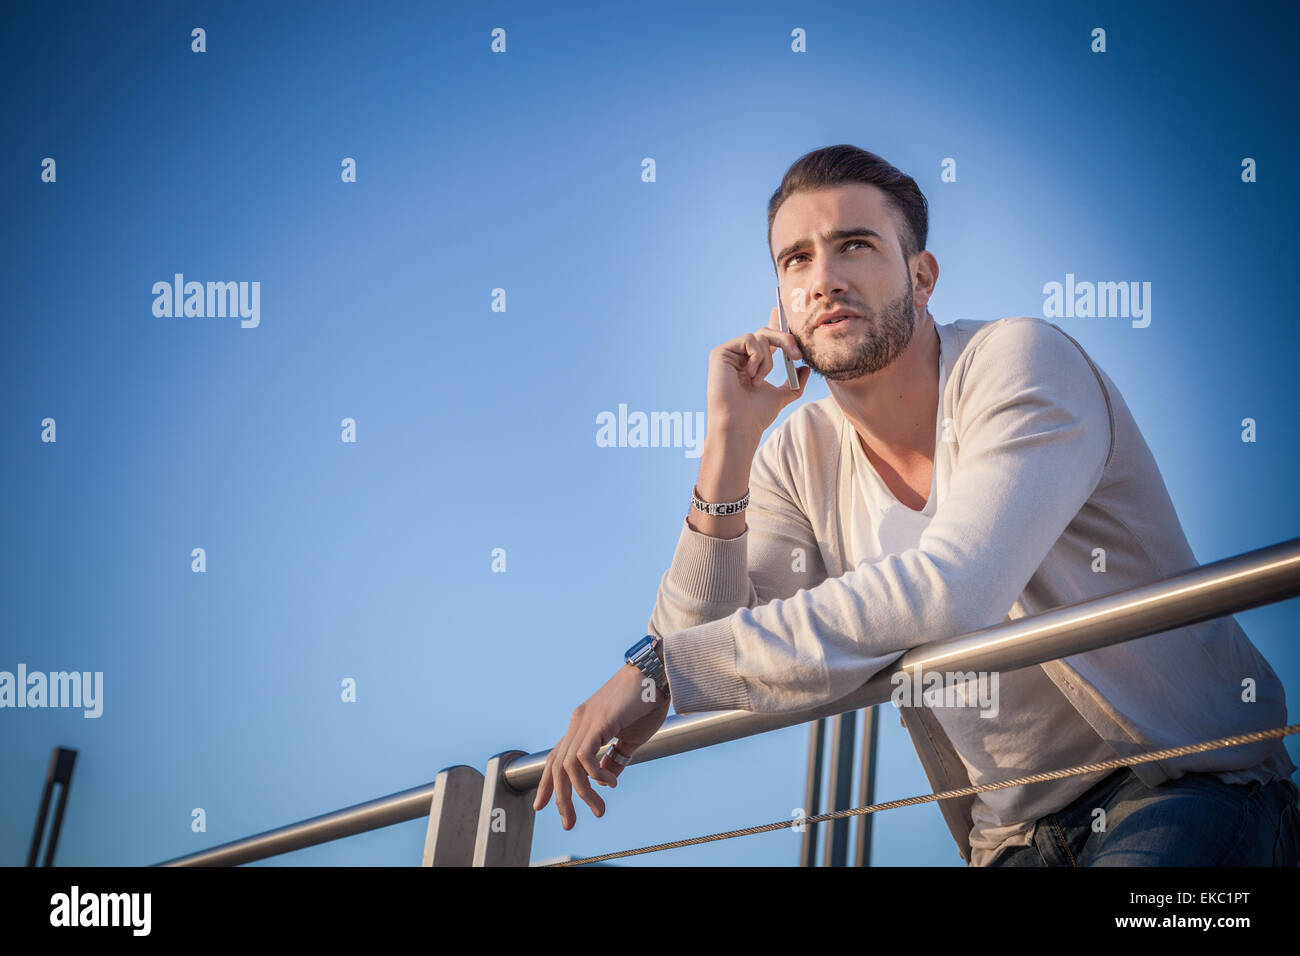 Young man using smartphone by port - Stock Image